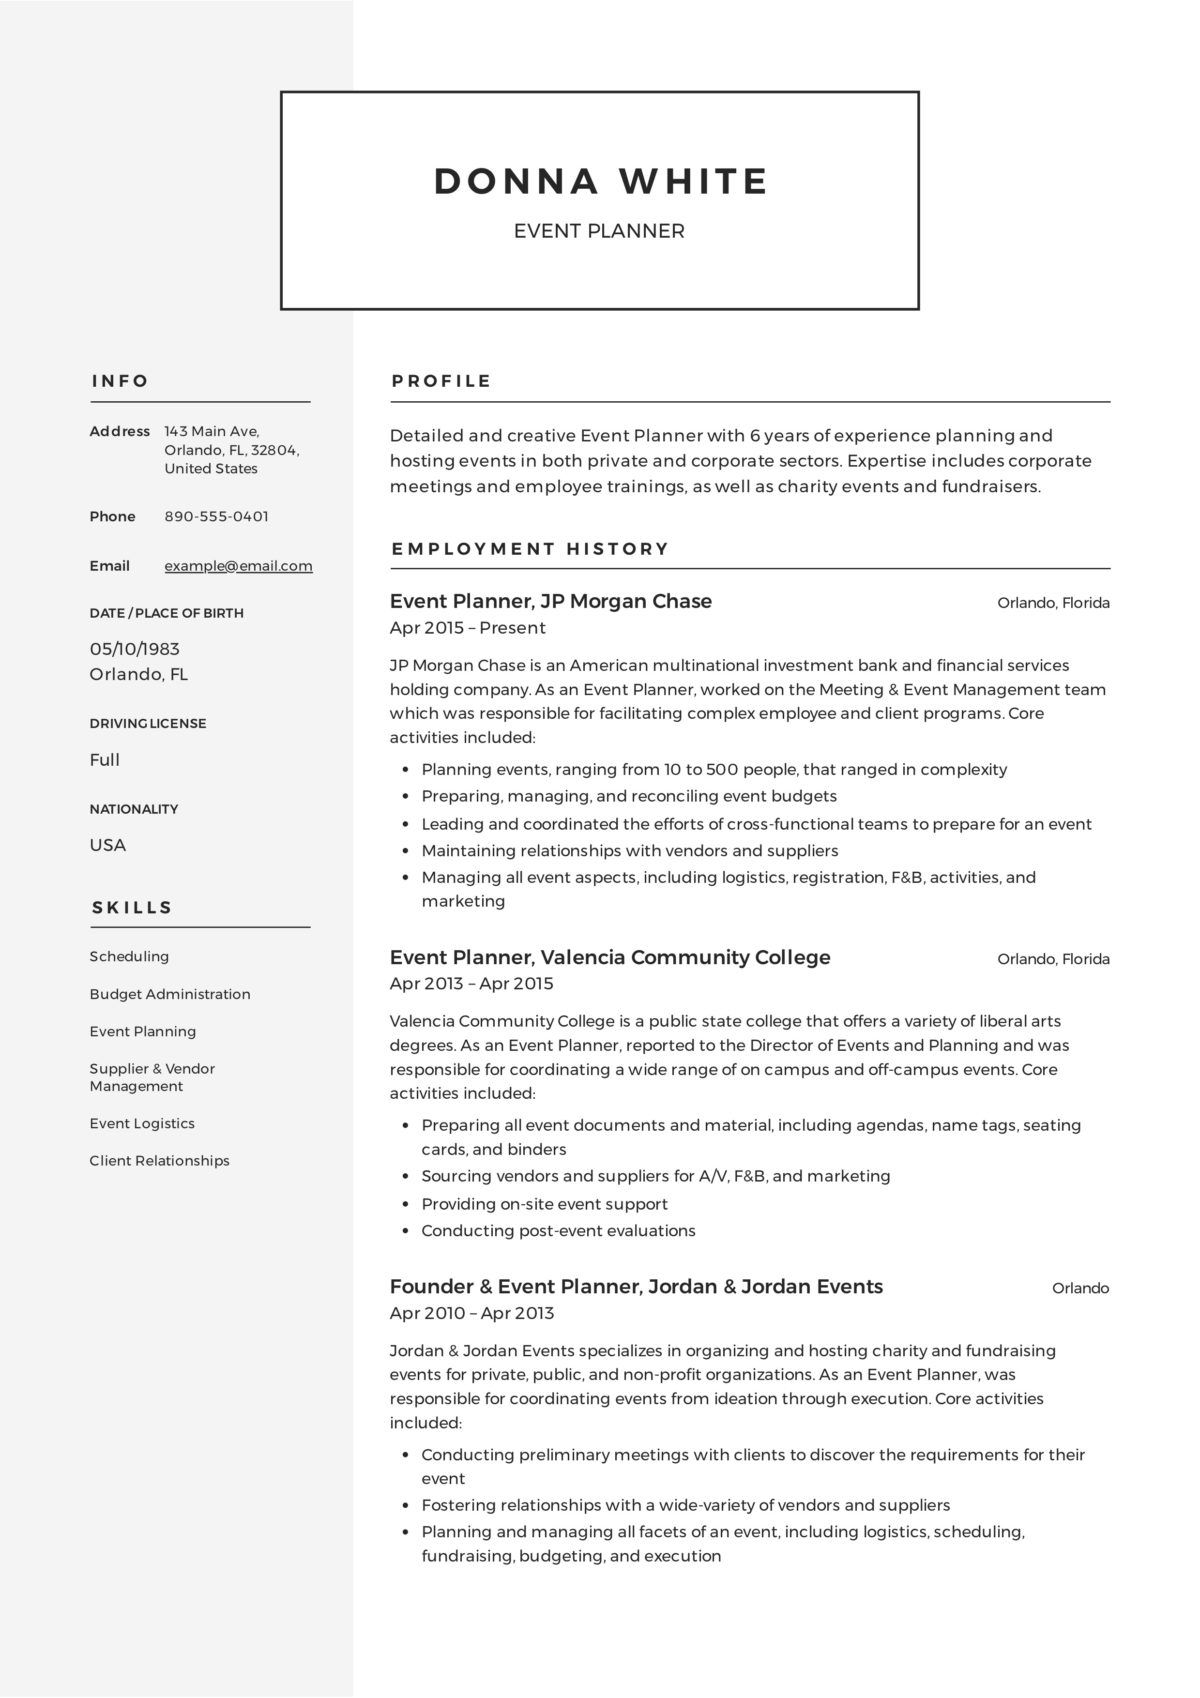 Guide Event Planner Resume 12 Samples Pdf Word 2020 In 2020 Administrative Assistant Resume Event Planner Resume Office Manager Resume